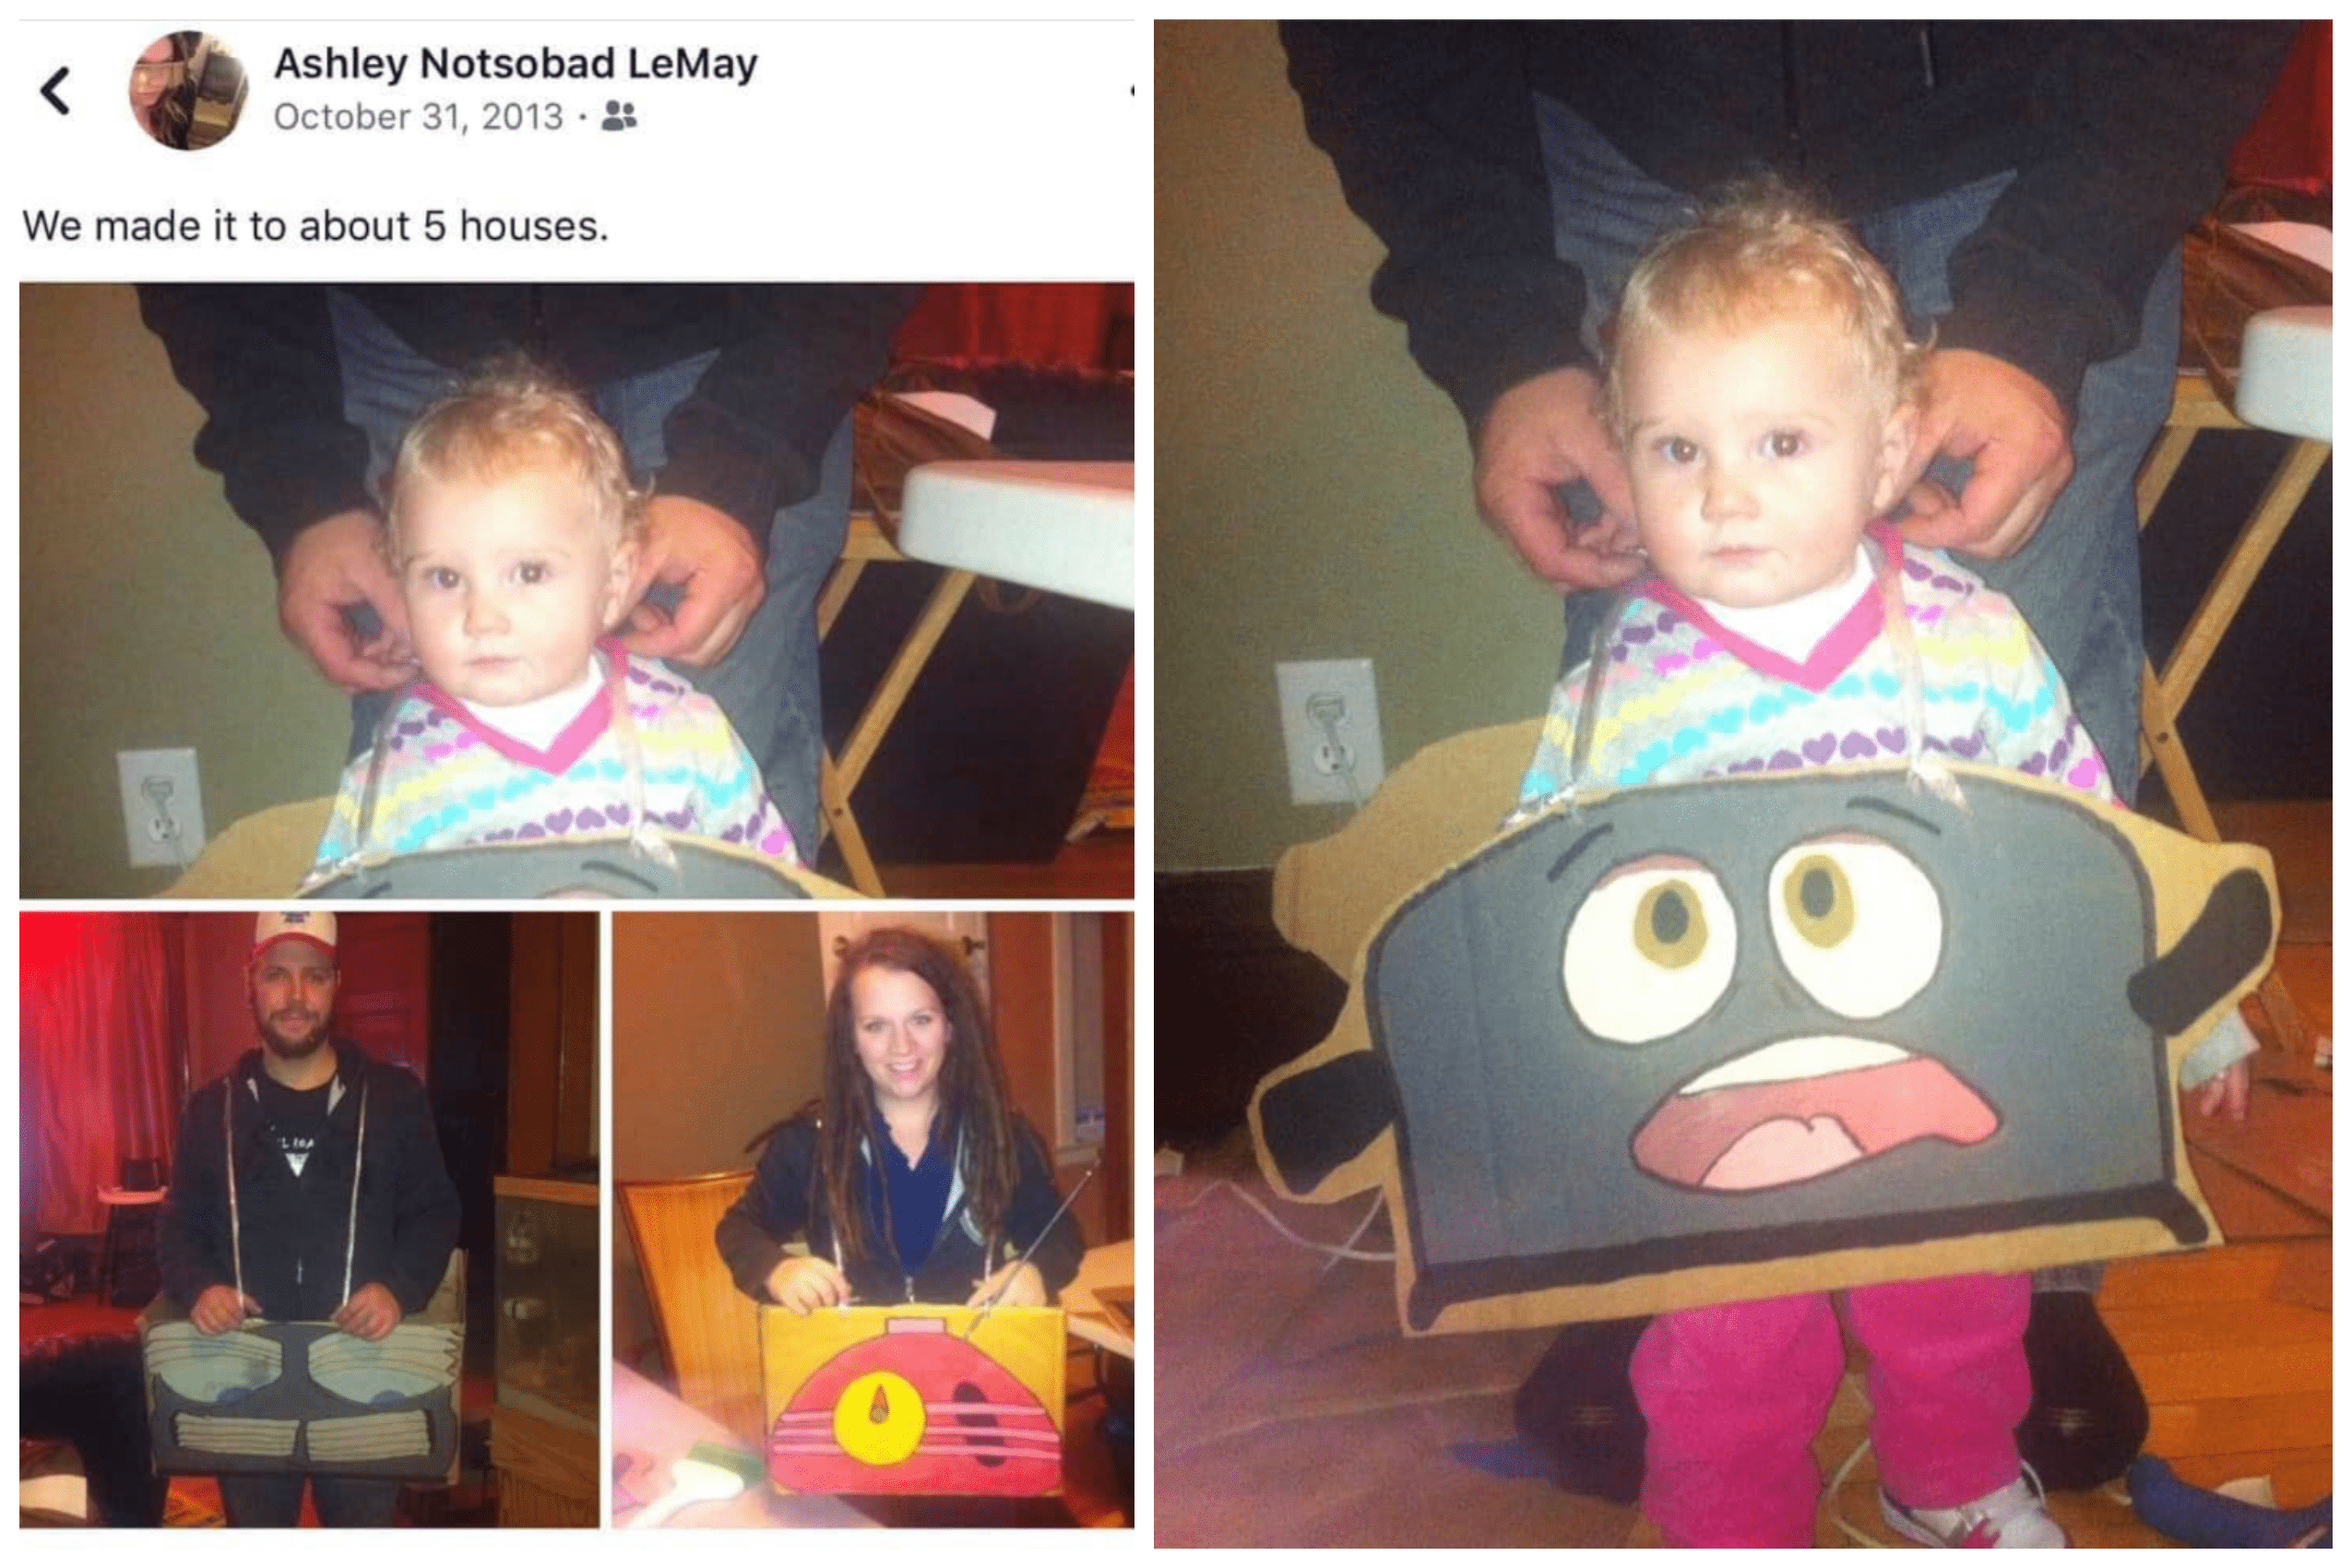 A family dressed in Halloween costumes to look like cartoon appliances.